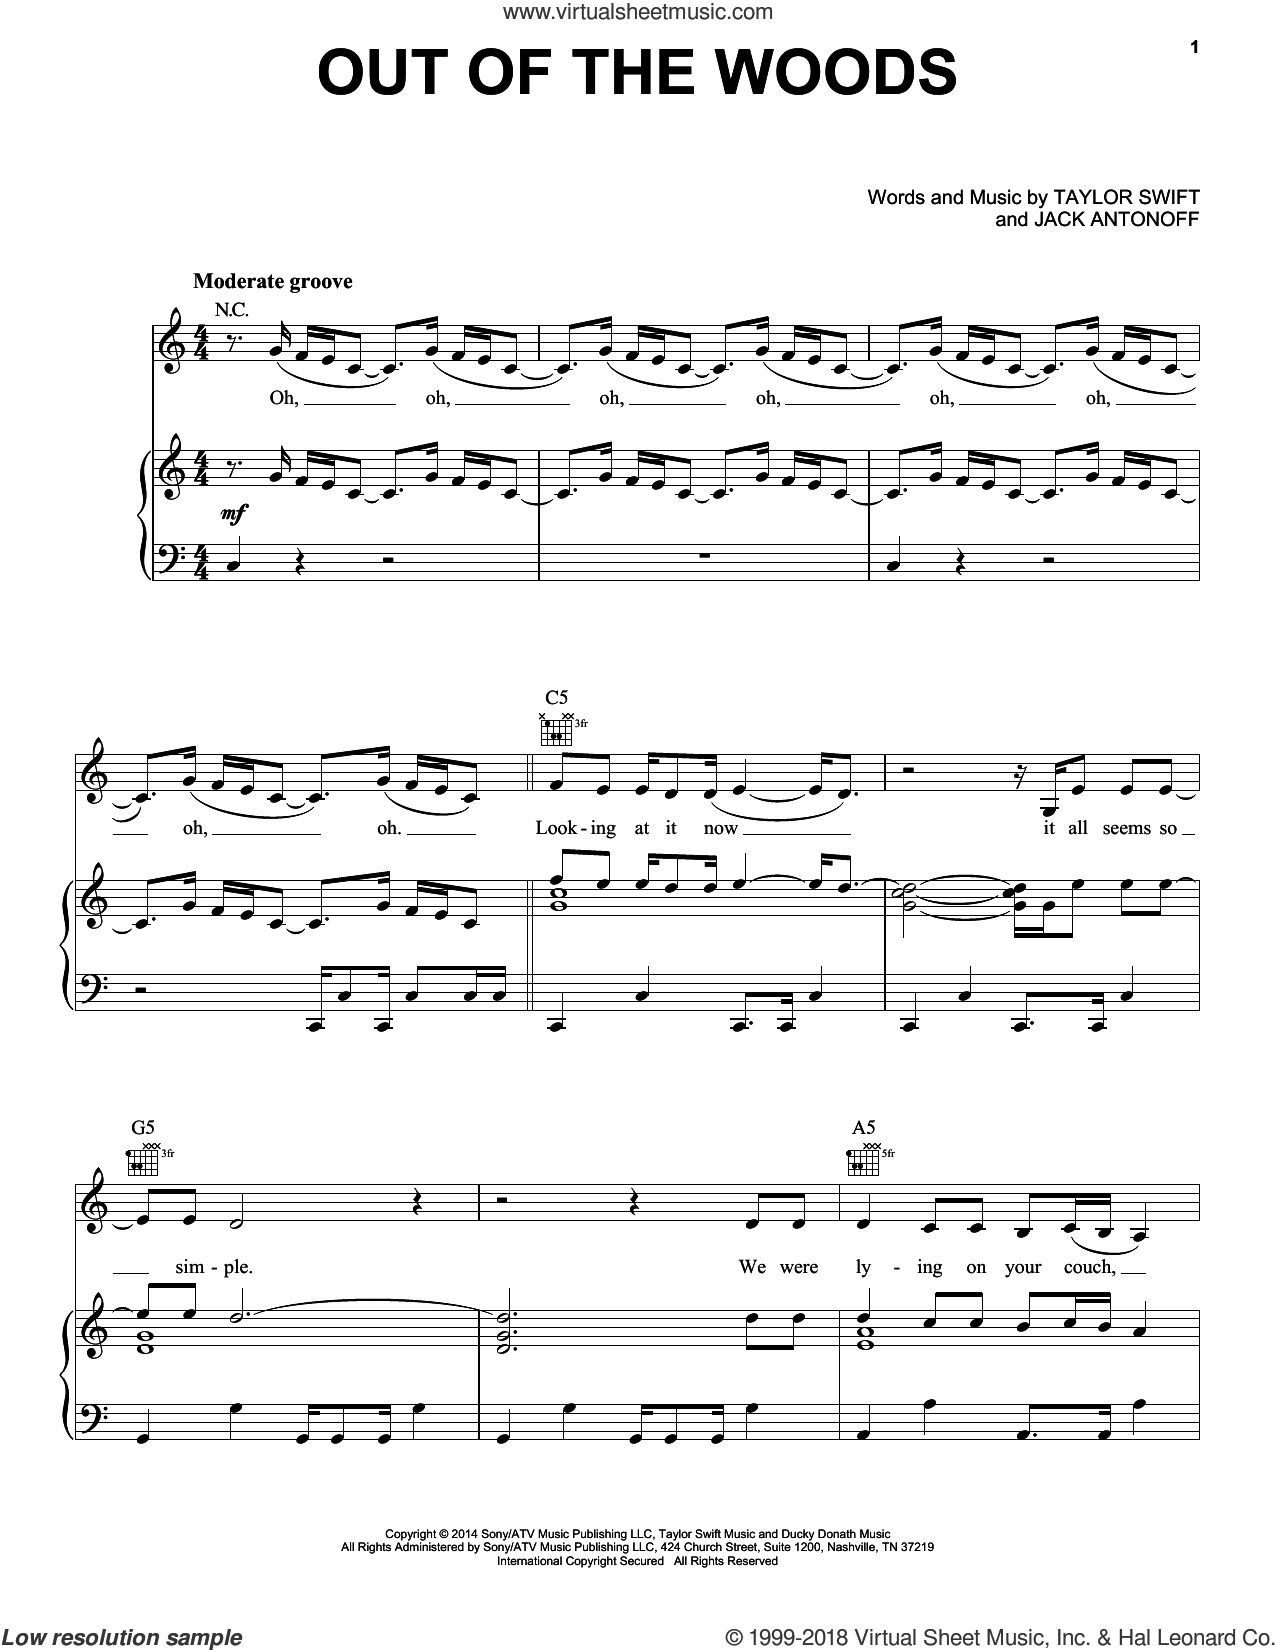 Out Of The Woods sheet music for voice, piano or guitar plus backing track by Taylor Swift and Jack Antonoff, intermediate skill level